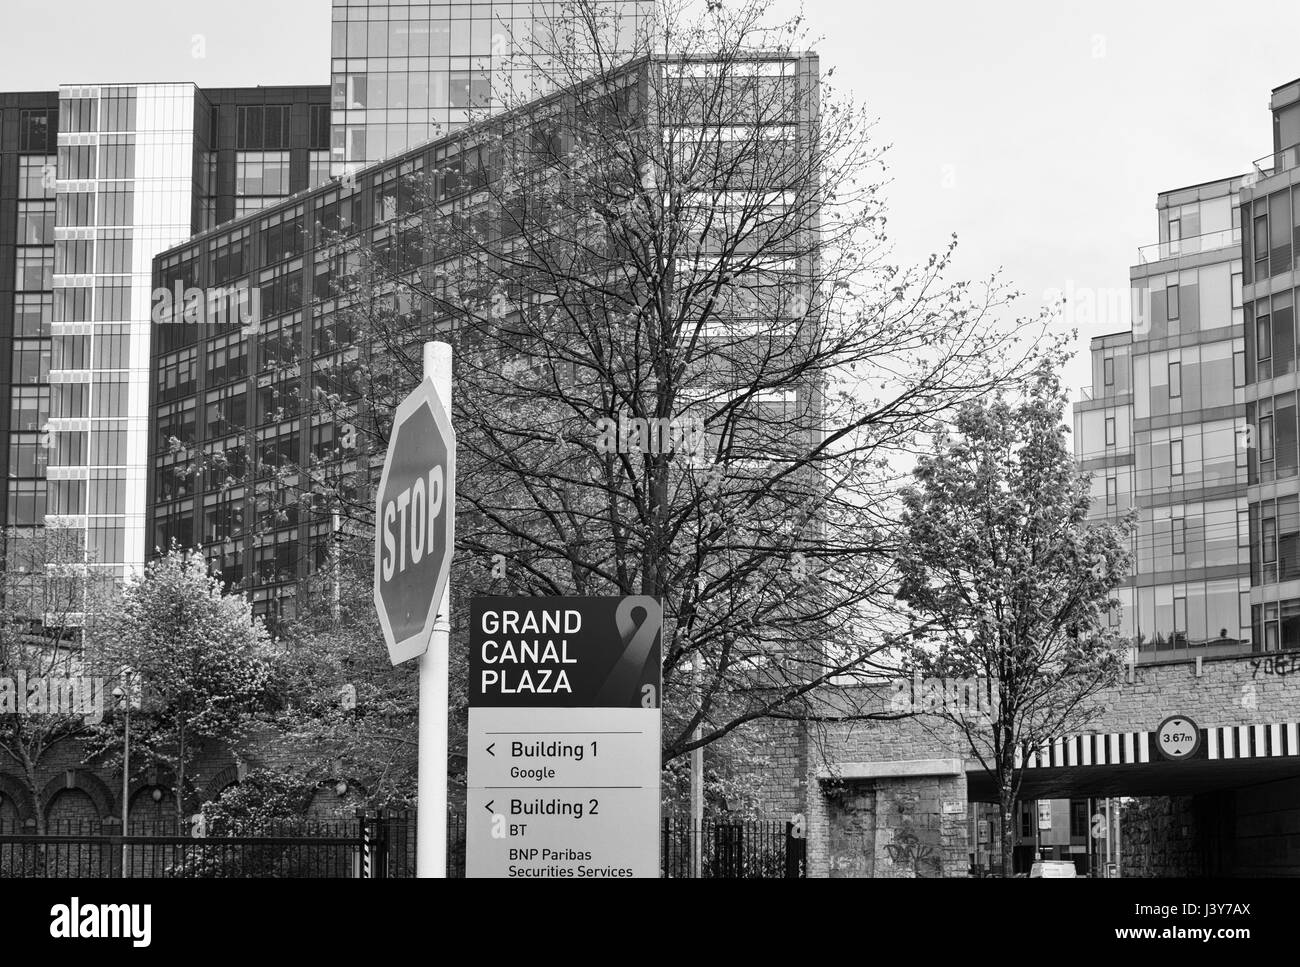 Google Office Snapshots 2 With Modern Office Building In Dublin Ireland Google European Headquaters Stock Image Office Black And White Photos u0026 Images Alamy